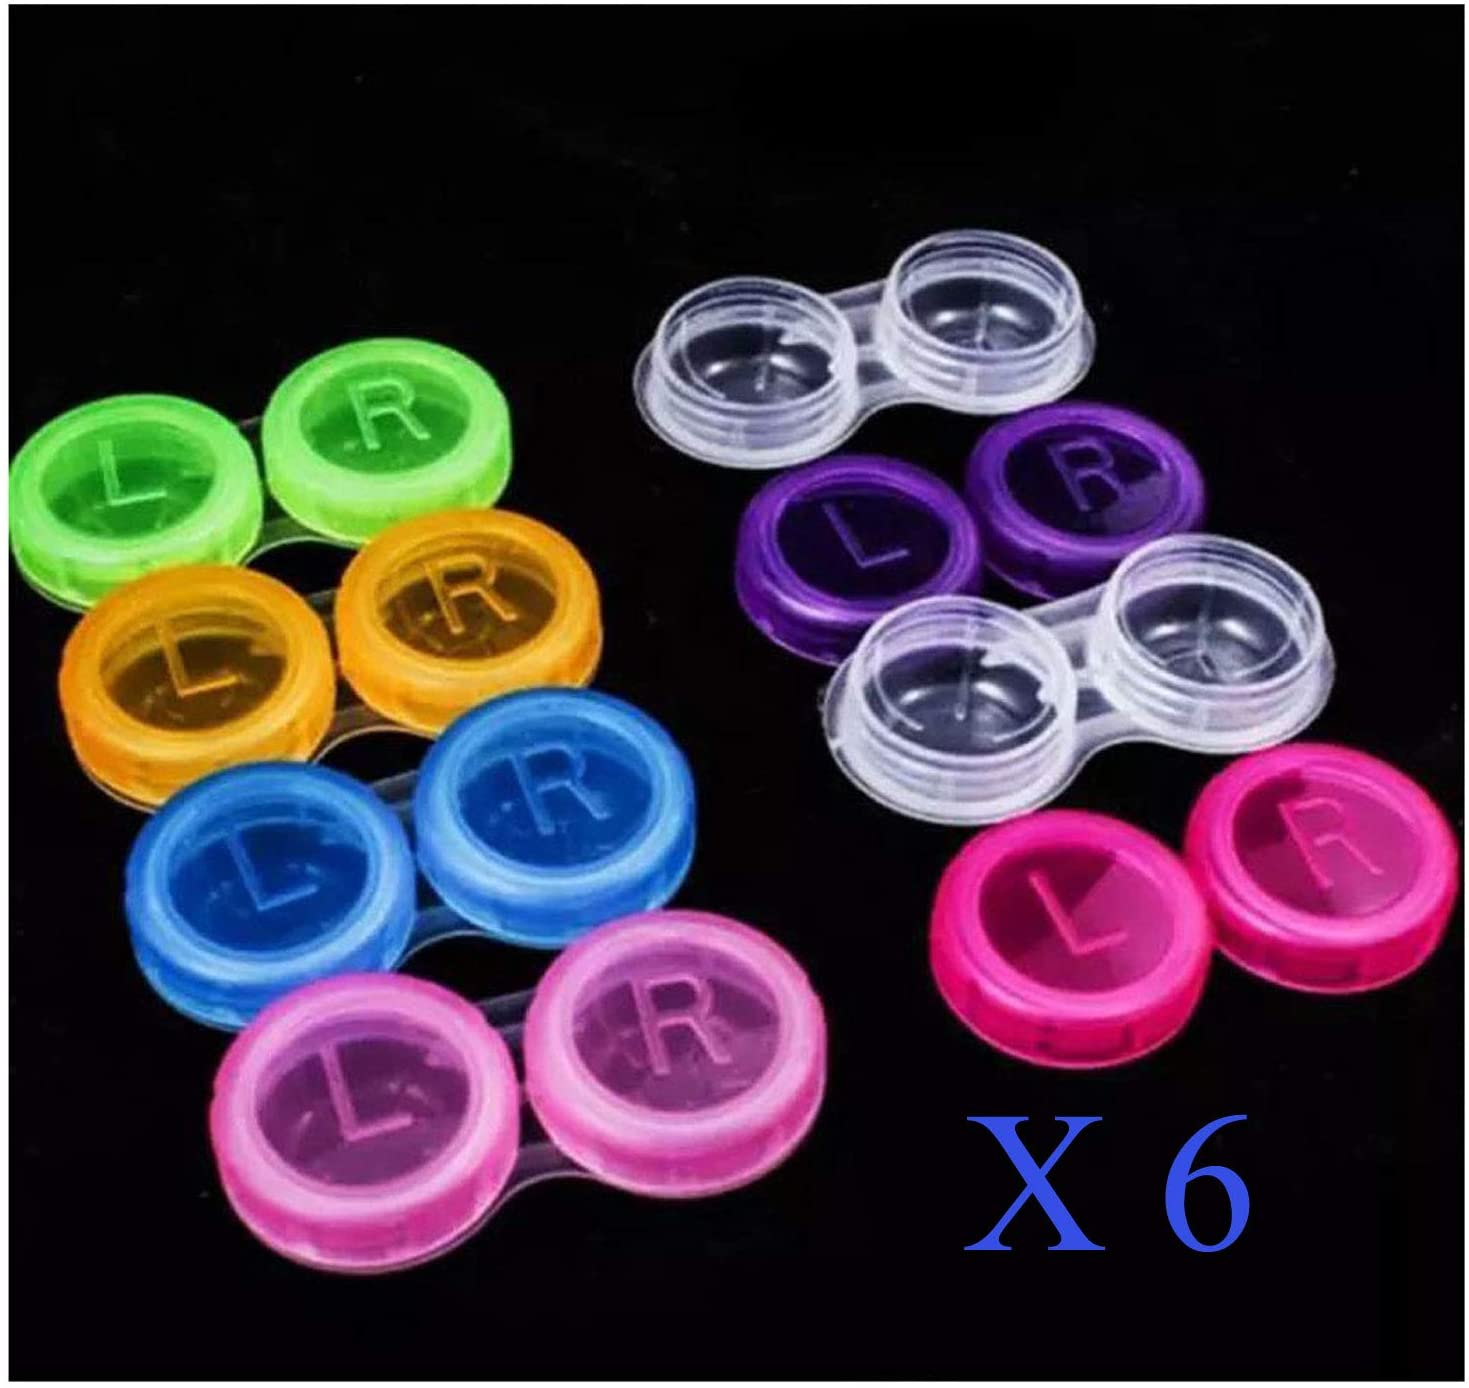 6 X Set of Plastic Contact Lens Storage Soaking Cases L + R Marked